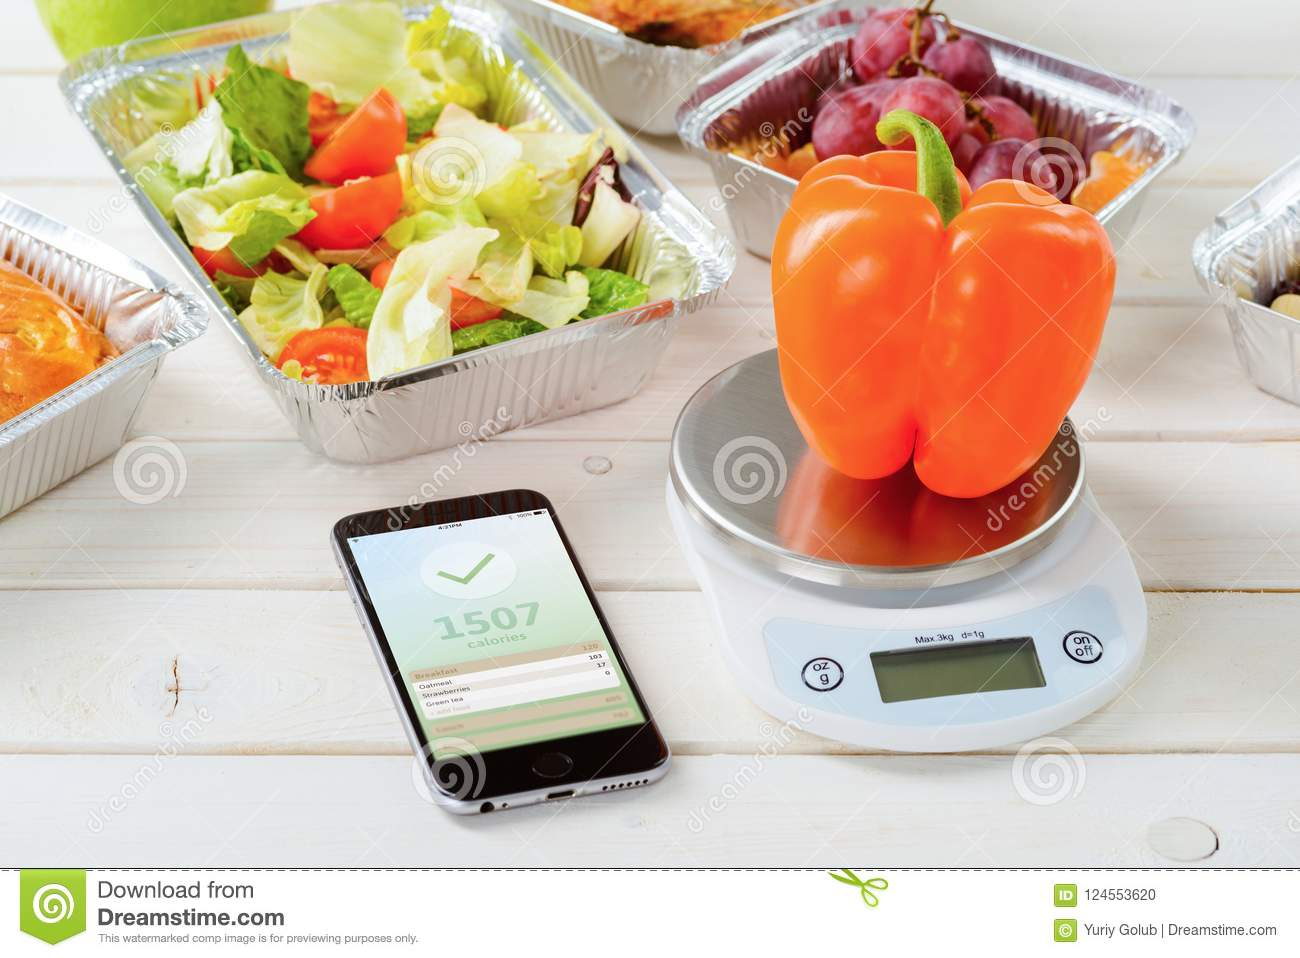 Salad and calorie counter app